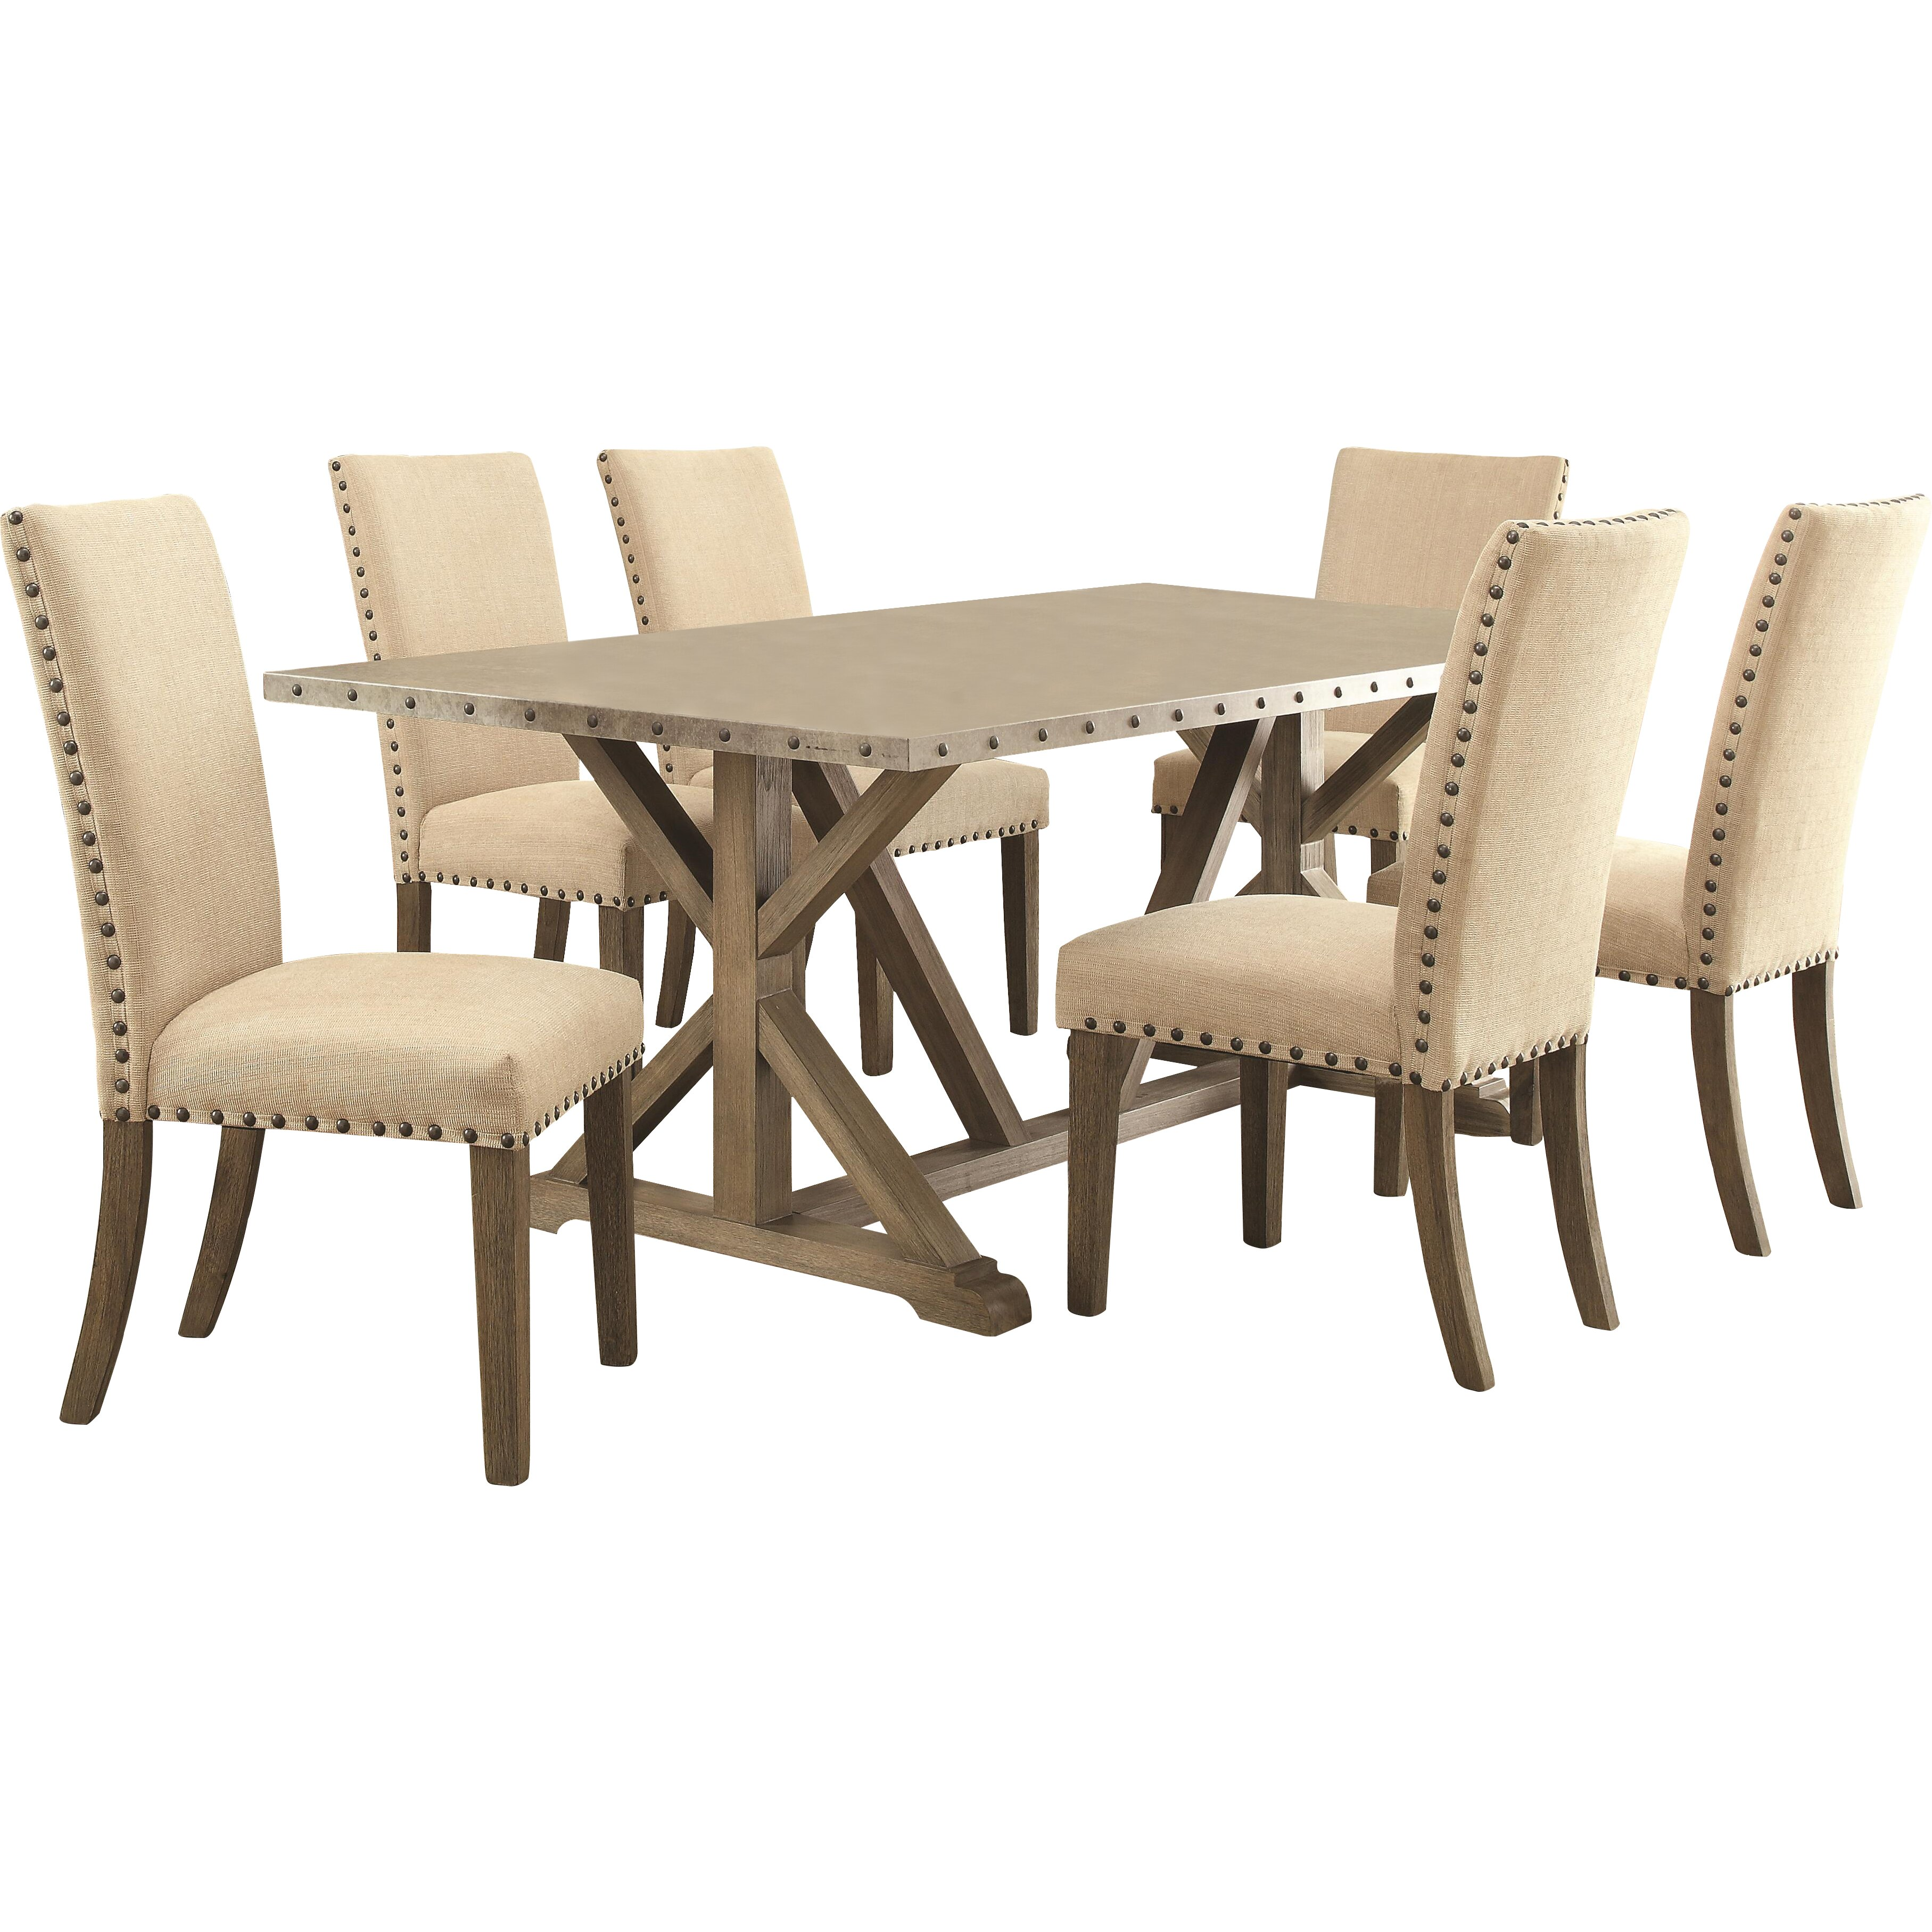 Wildon home pearse dining table reviews wayfair for Wildon home dining